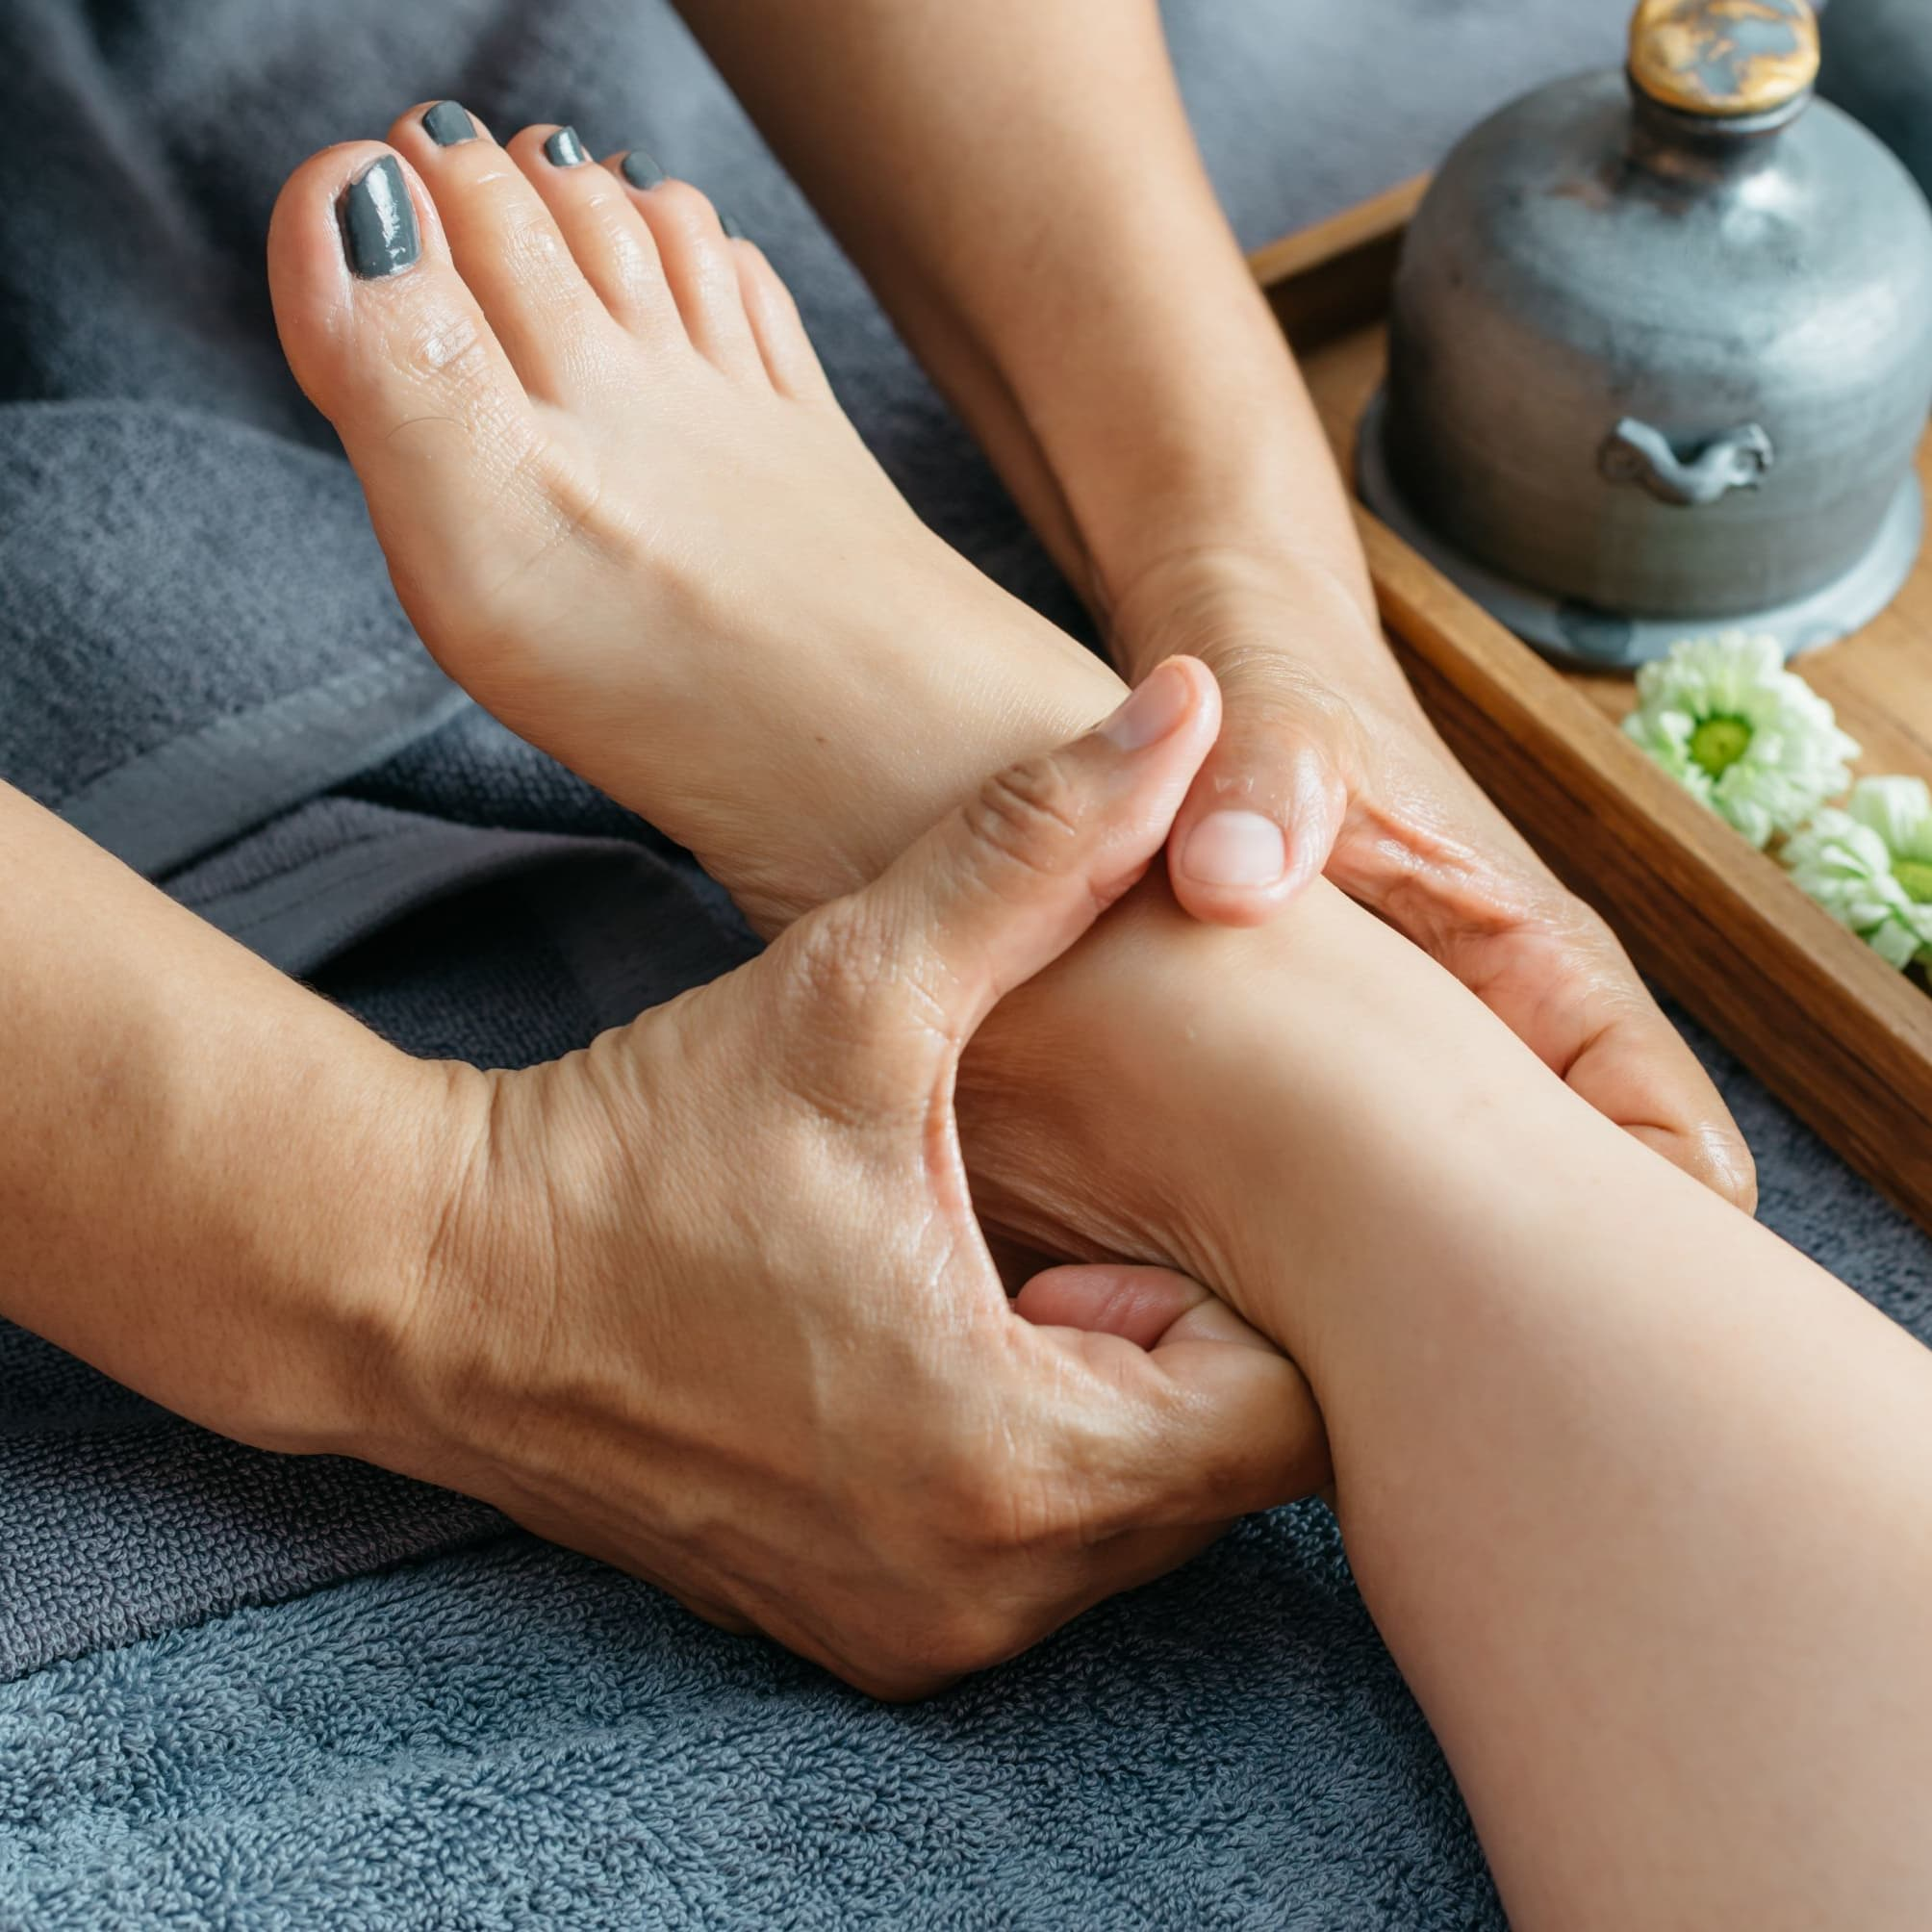 60-Min Foot Reflexology for 2 people (1 Session)